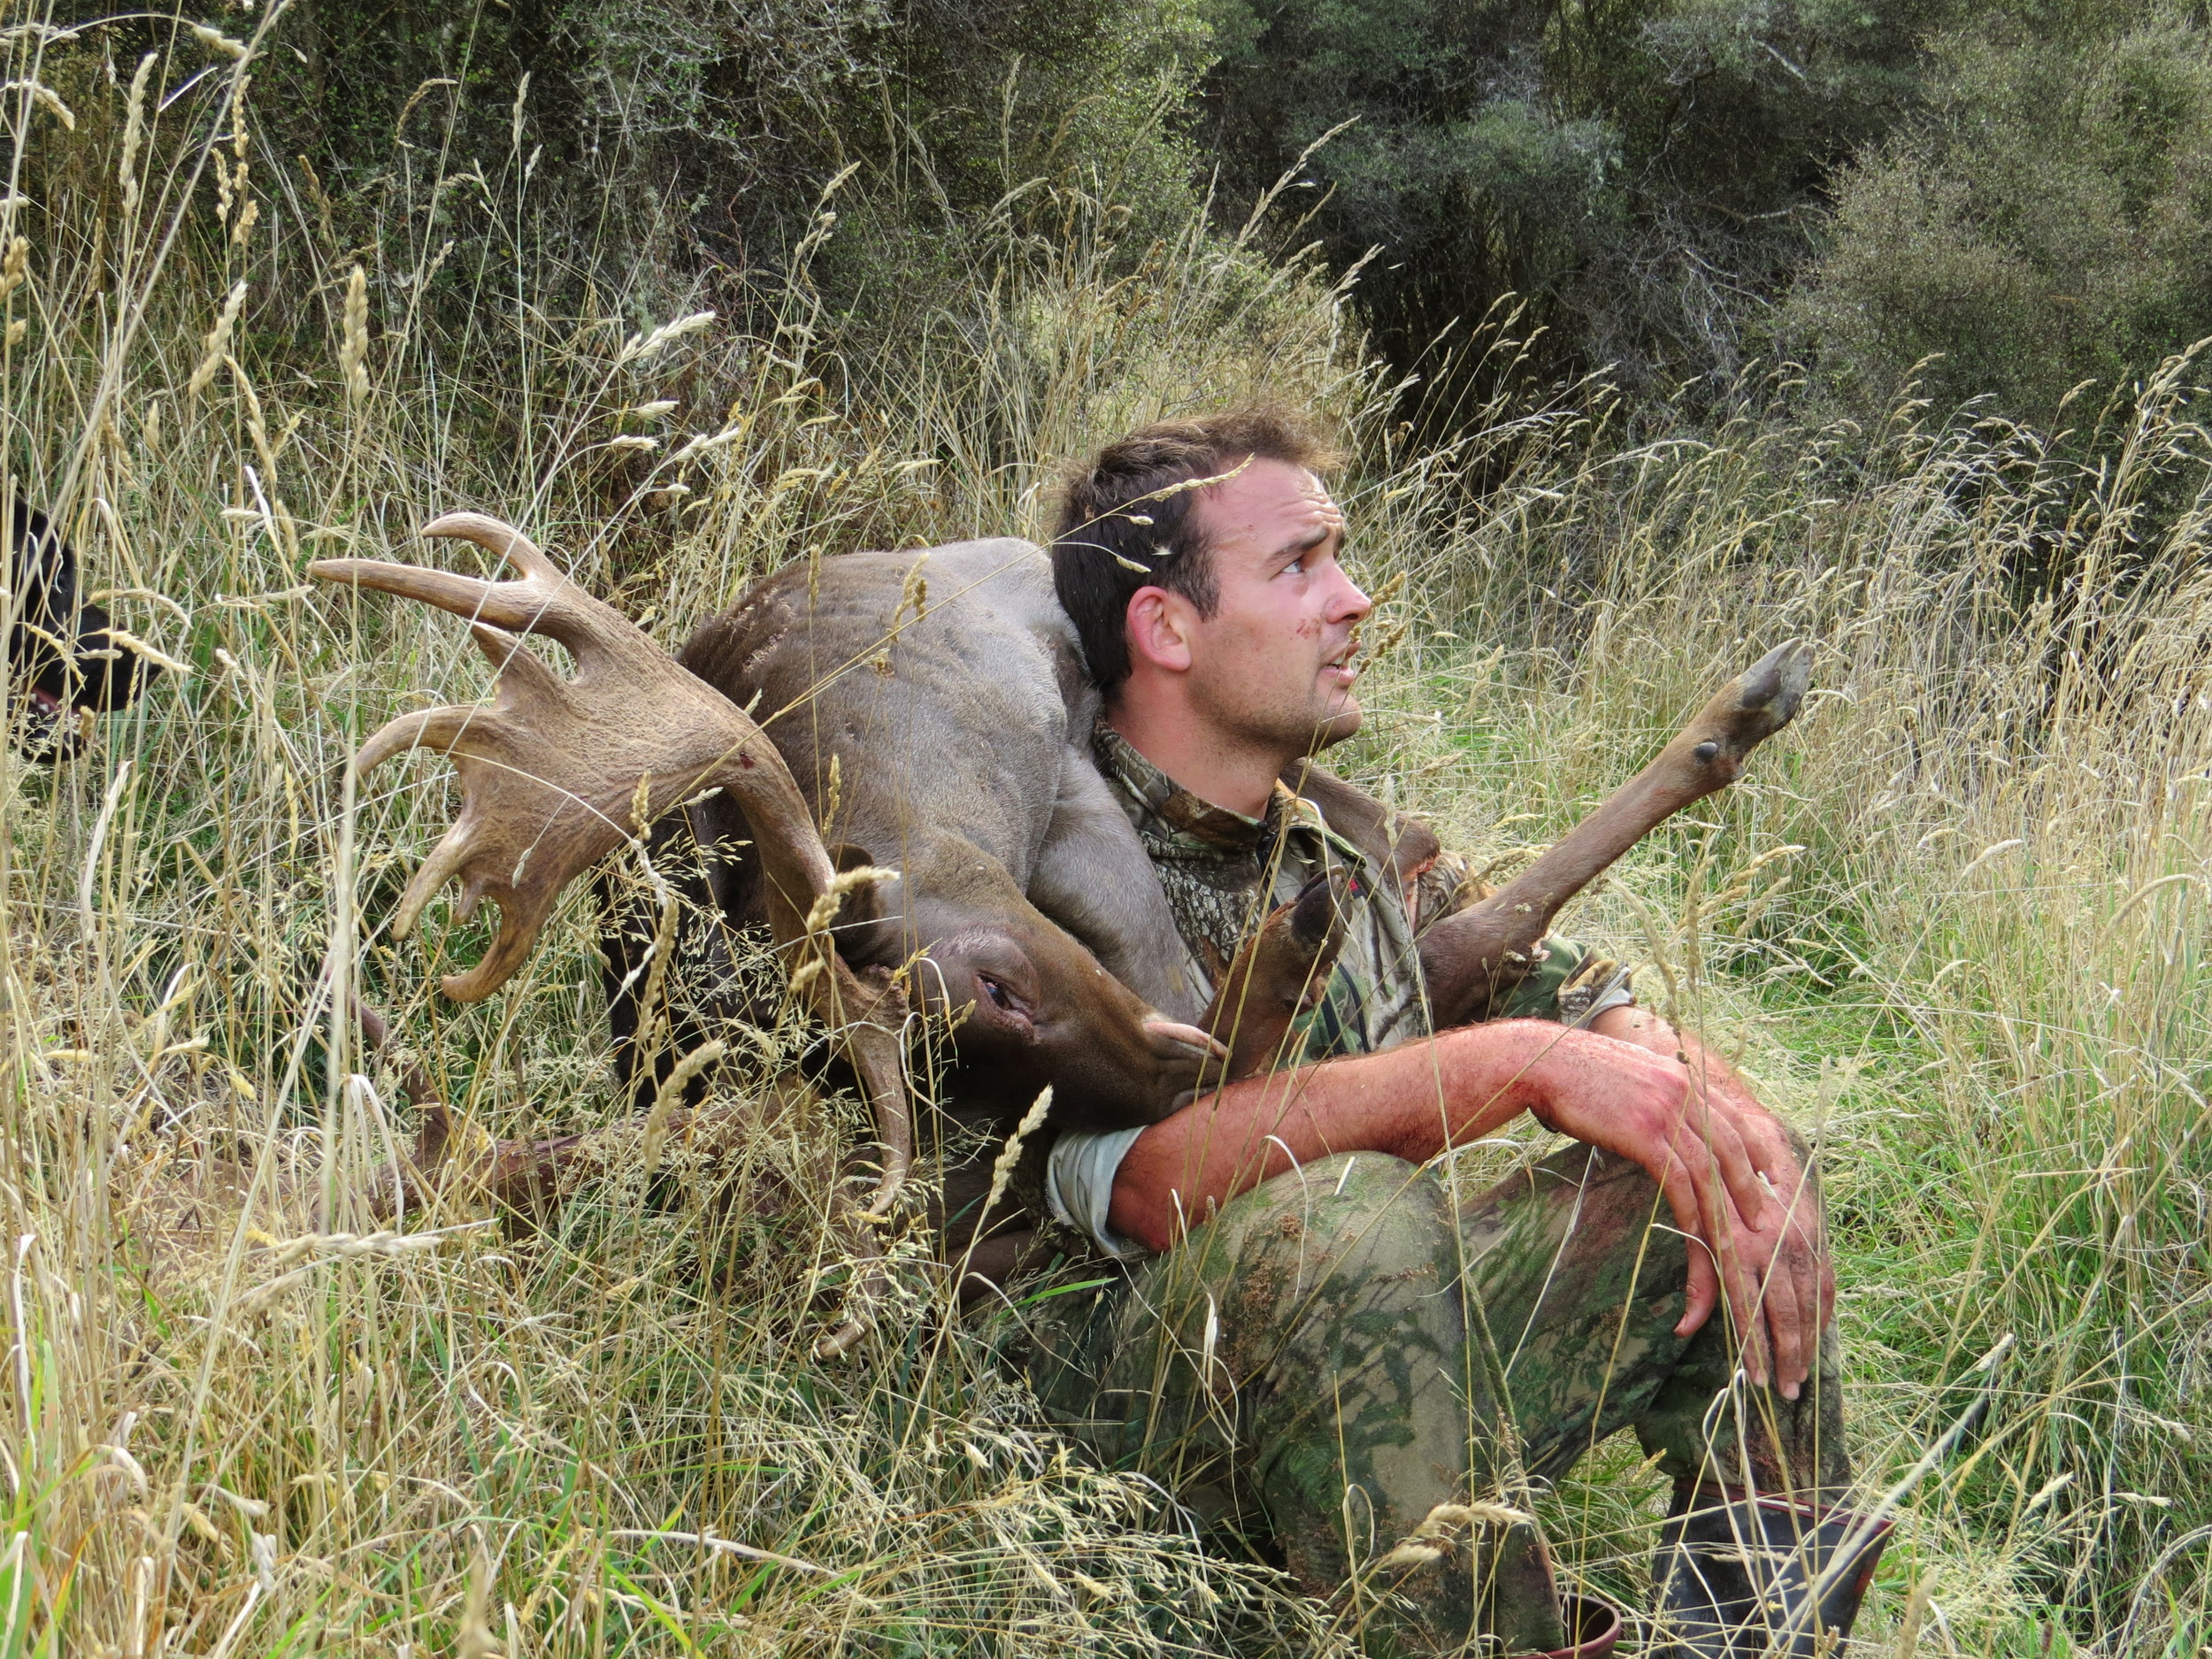 Richie takes a rest while attempting to carry out his entire fallow buck - photo Ryan Carr